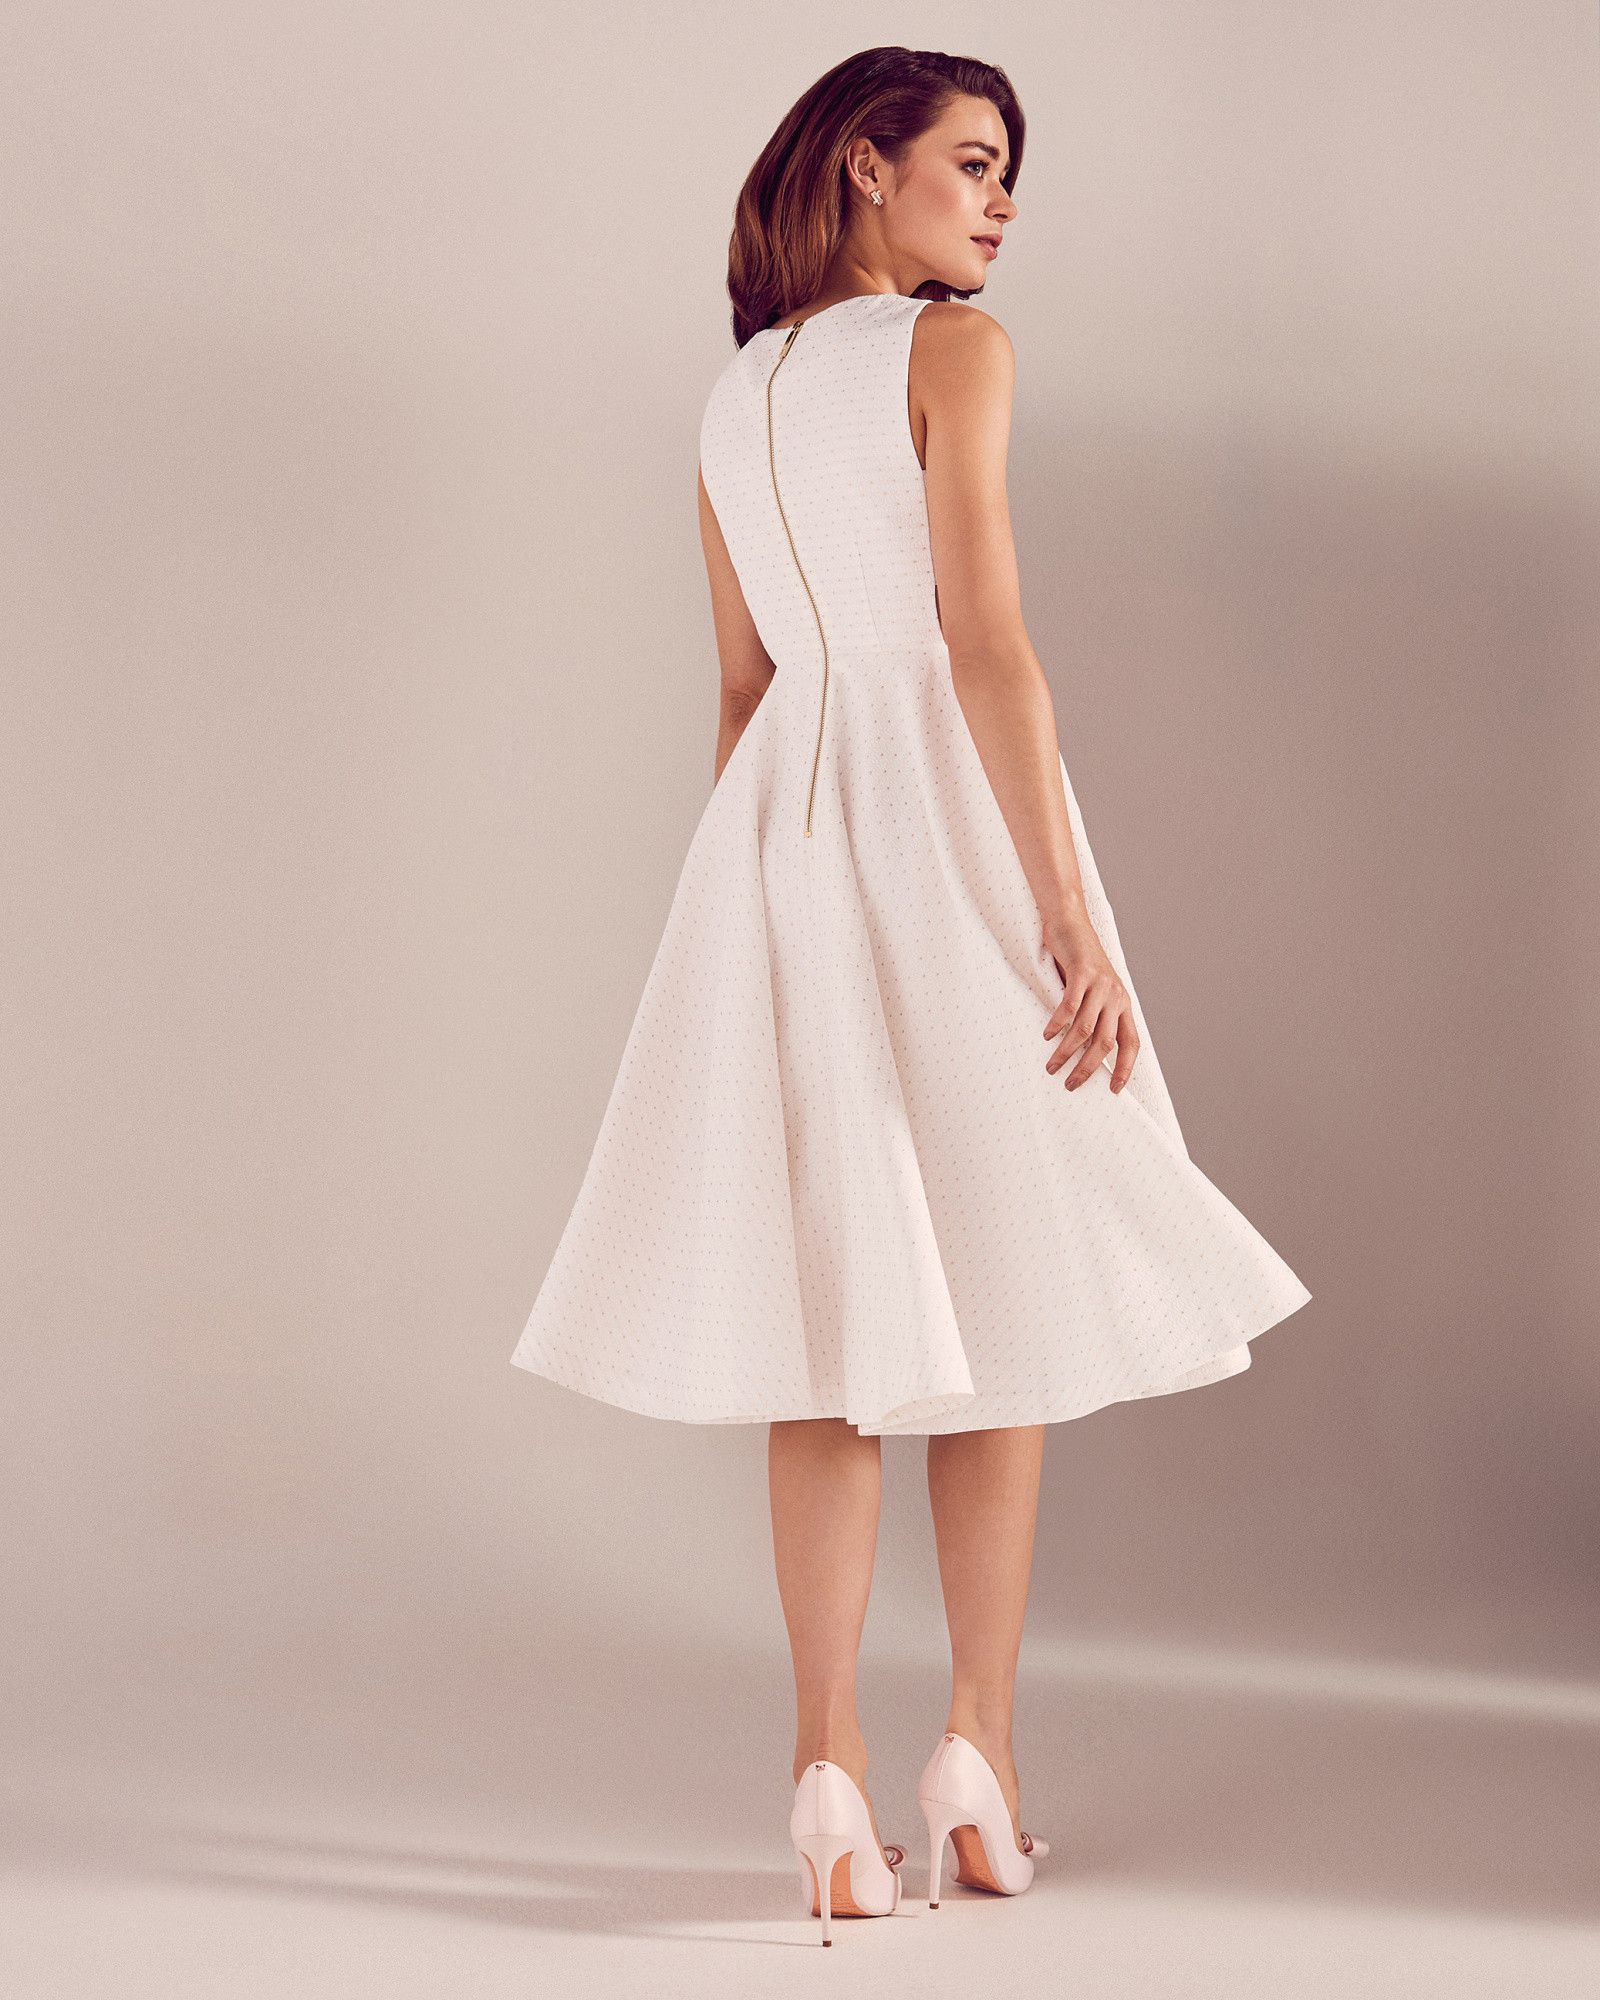 21d0cca7e97 Daisy jacquard cut-out midi dress - White | Dresses | Ted Baker ...